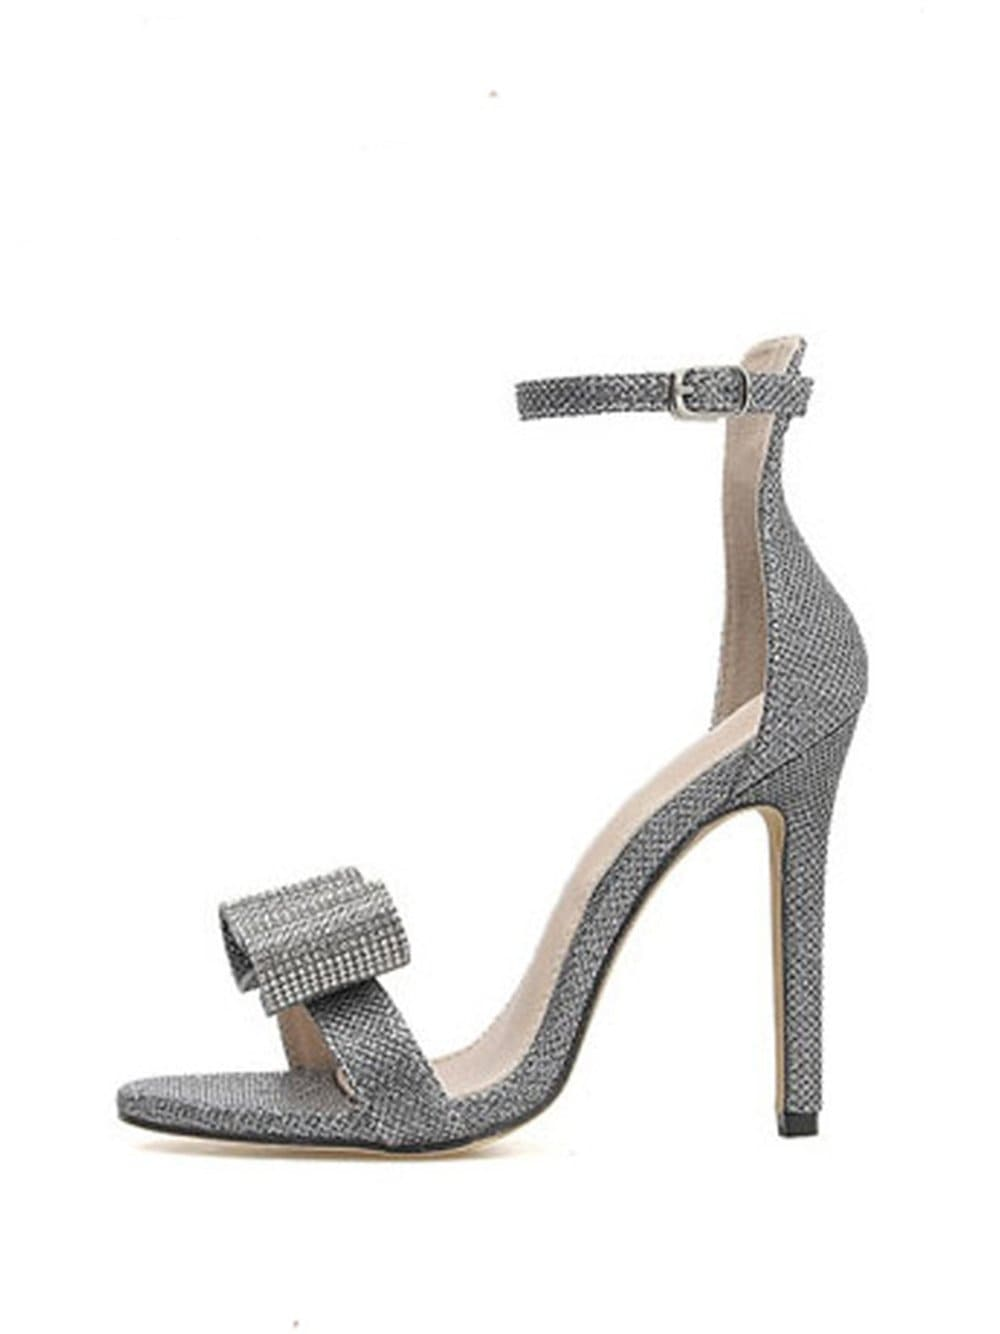 SAUL Rhinestone-Beaded High Heel Shoes